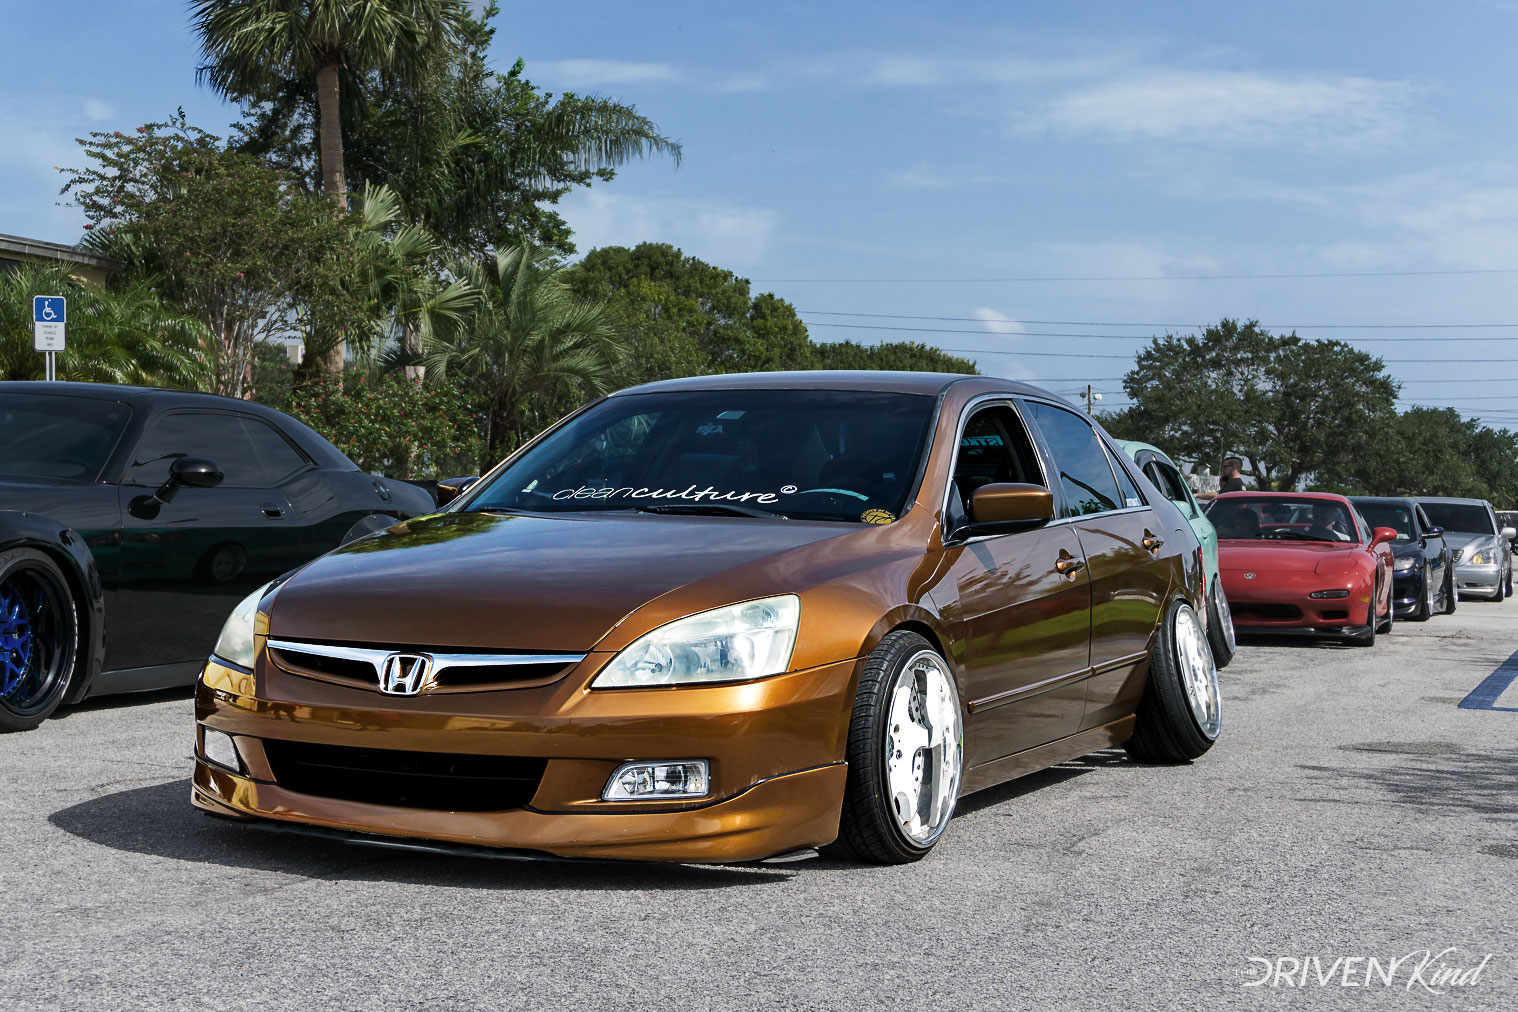 Honda Accord Daily Driven Inc. Presents Florida's Finest Melbourne FL Auditorium coverage by The Driven Kind